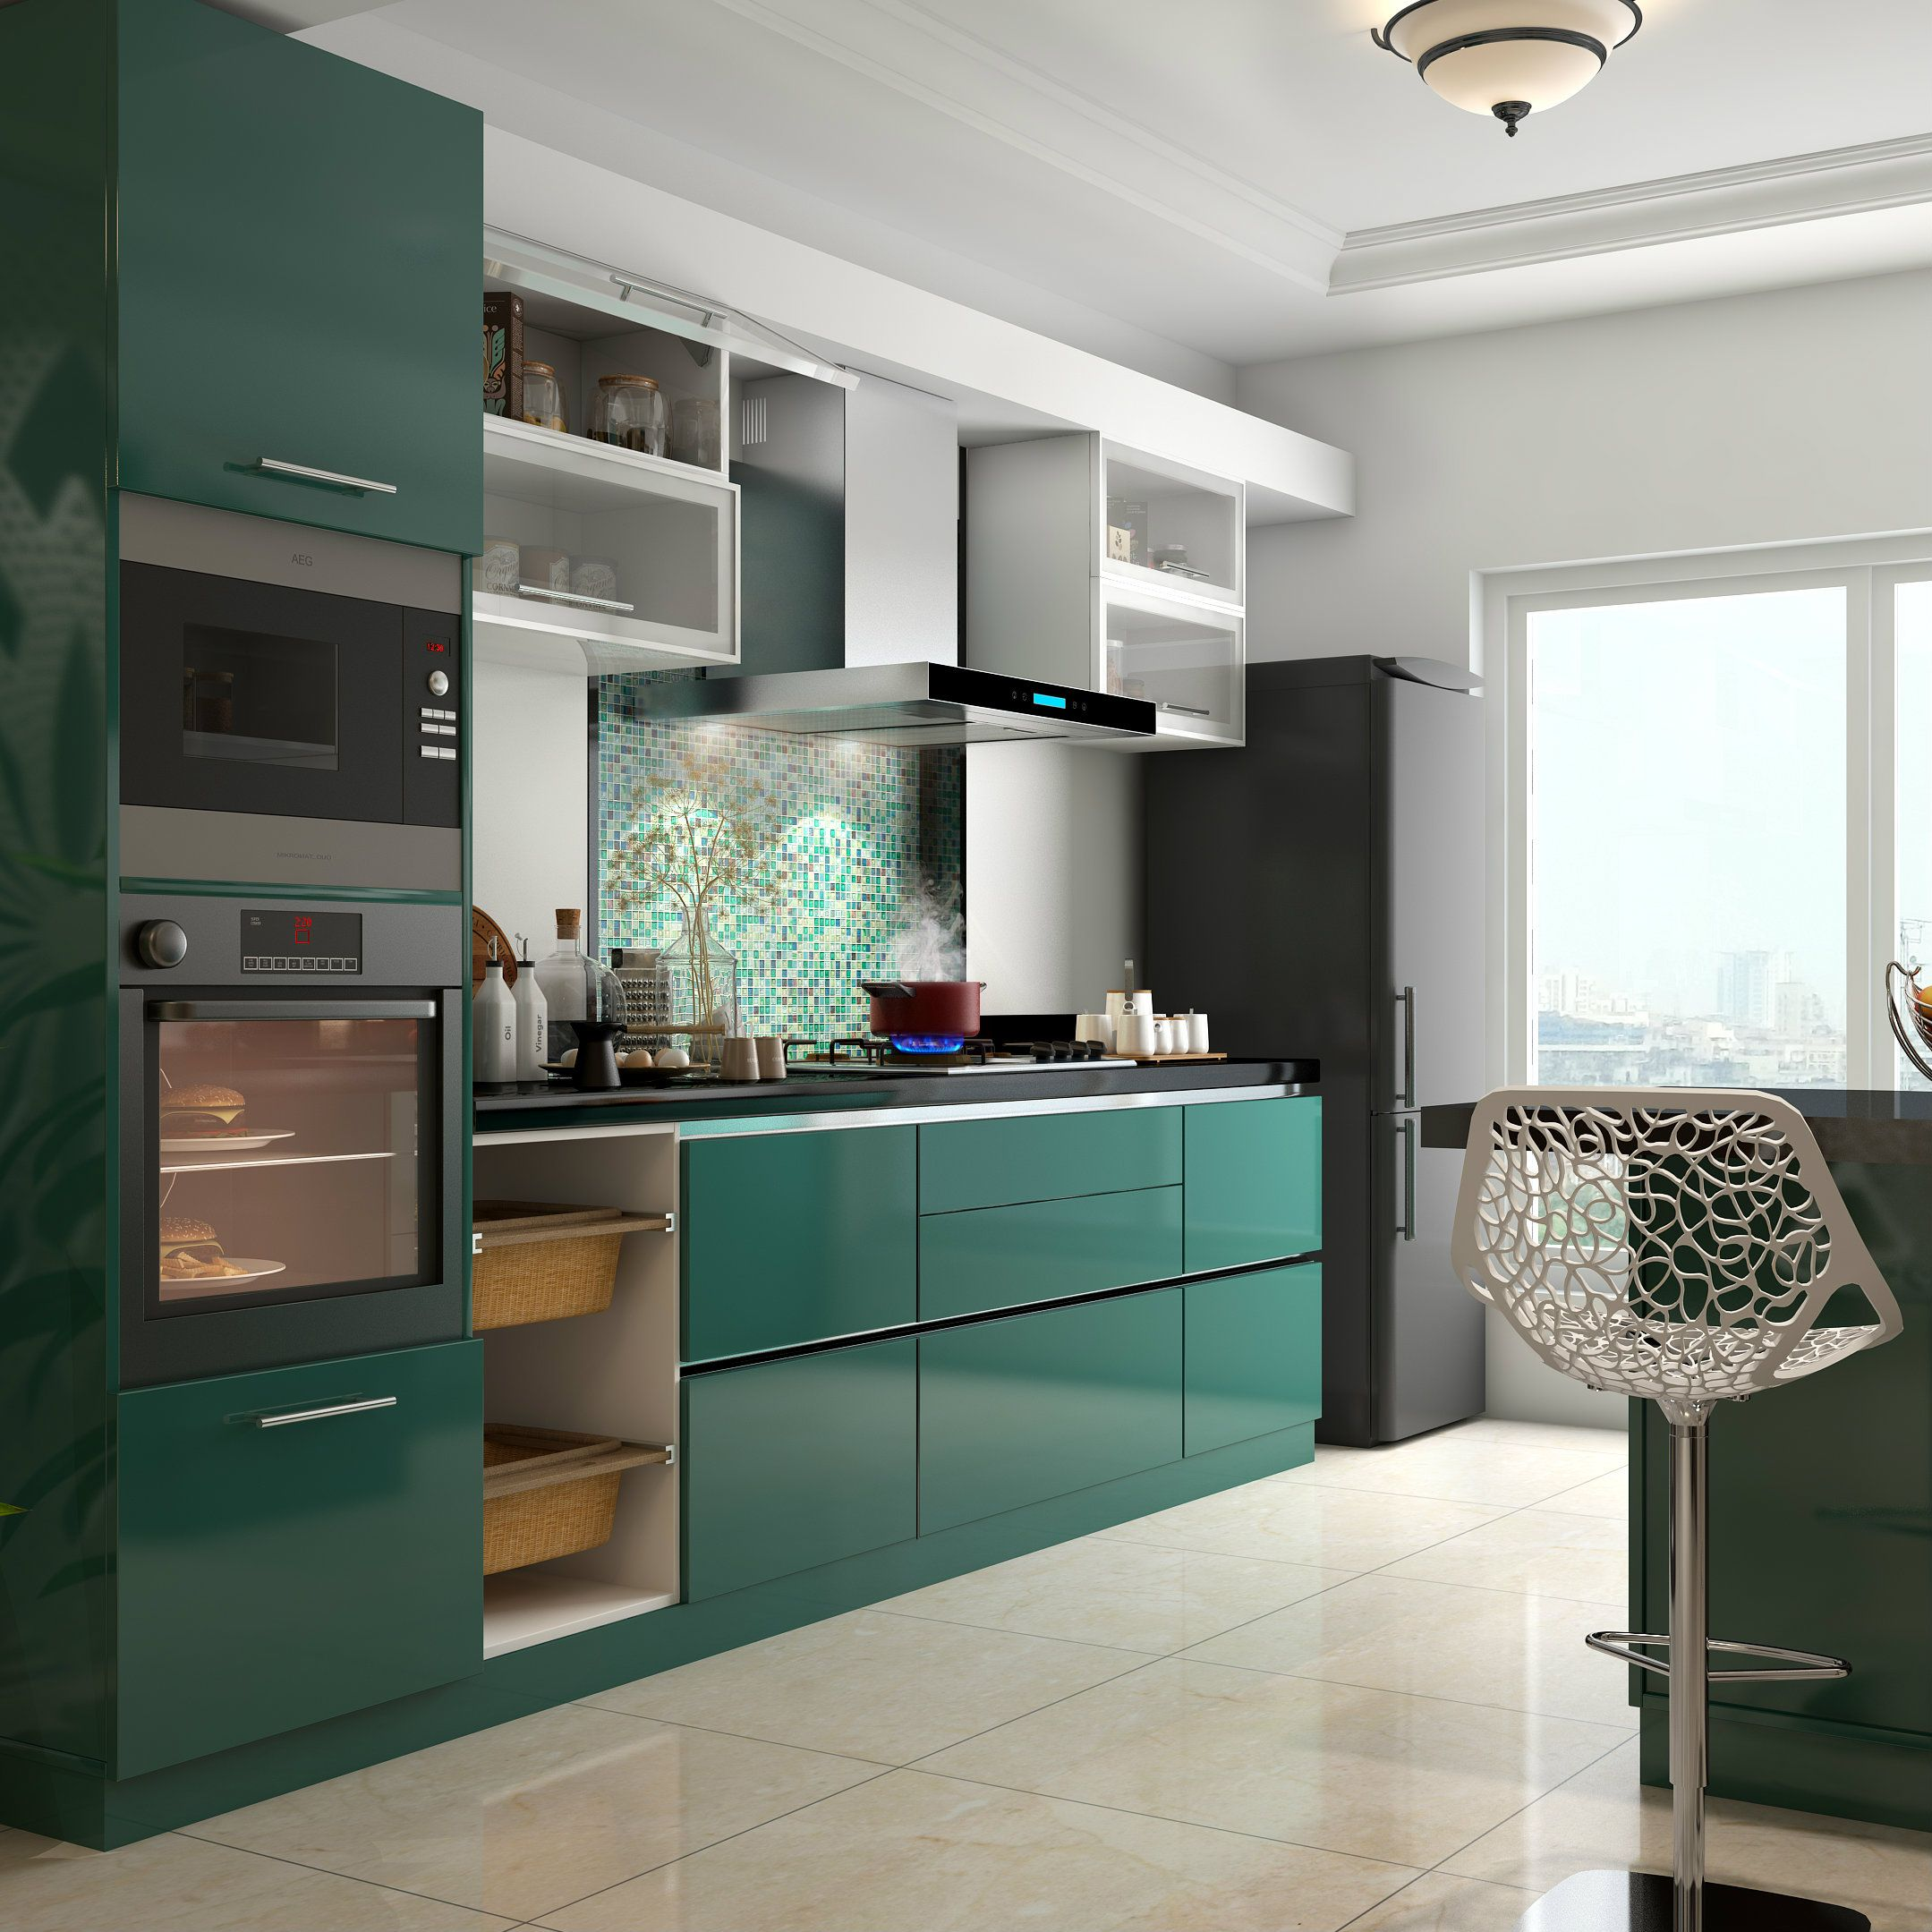 Glossy Green Cabinets Infuse Vitality To This Kitchen